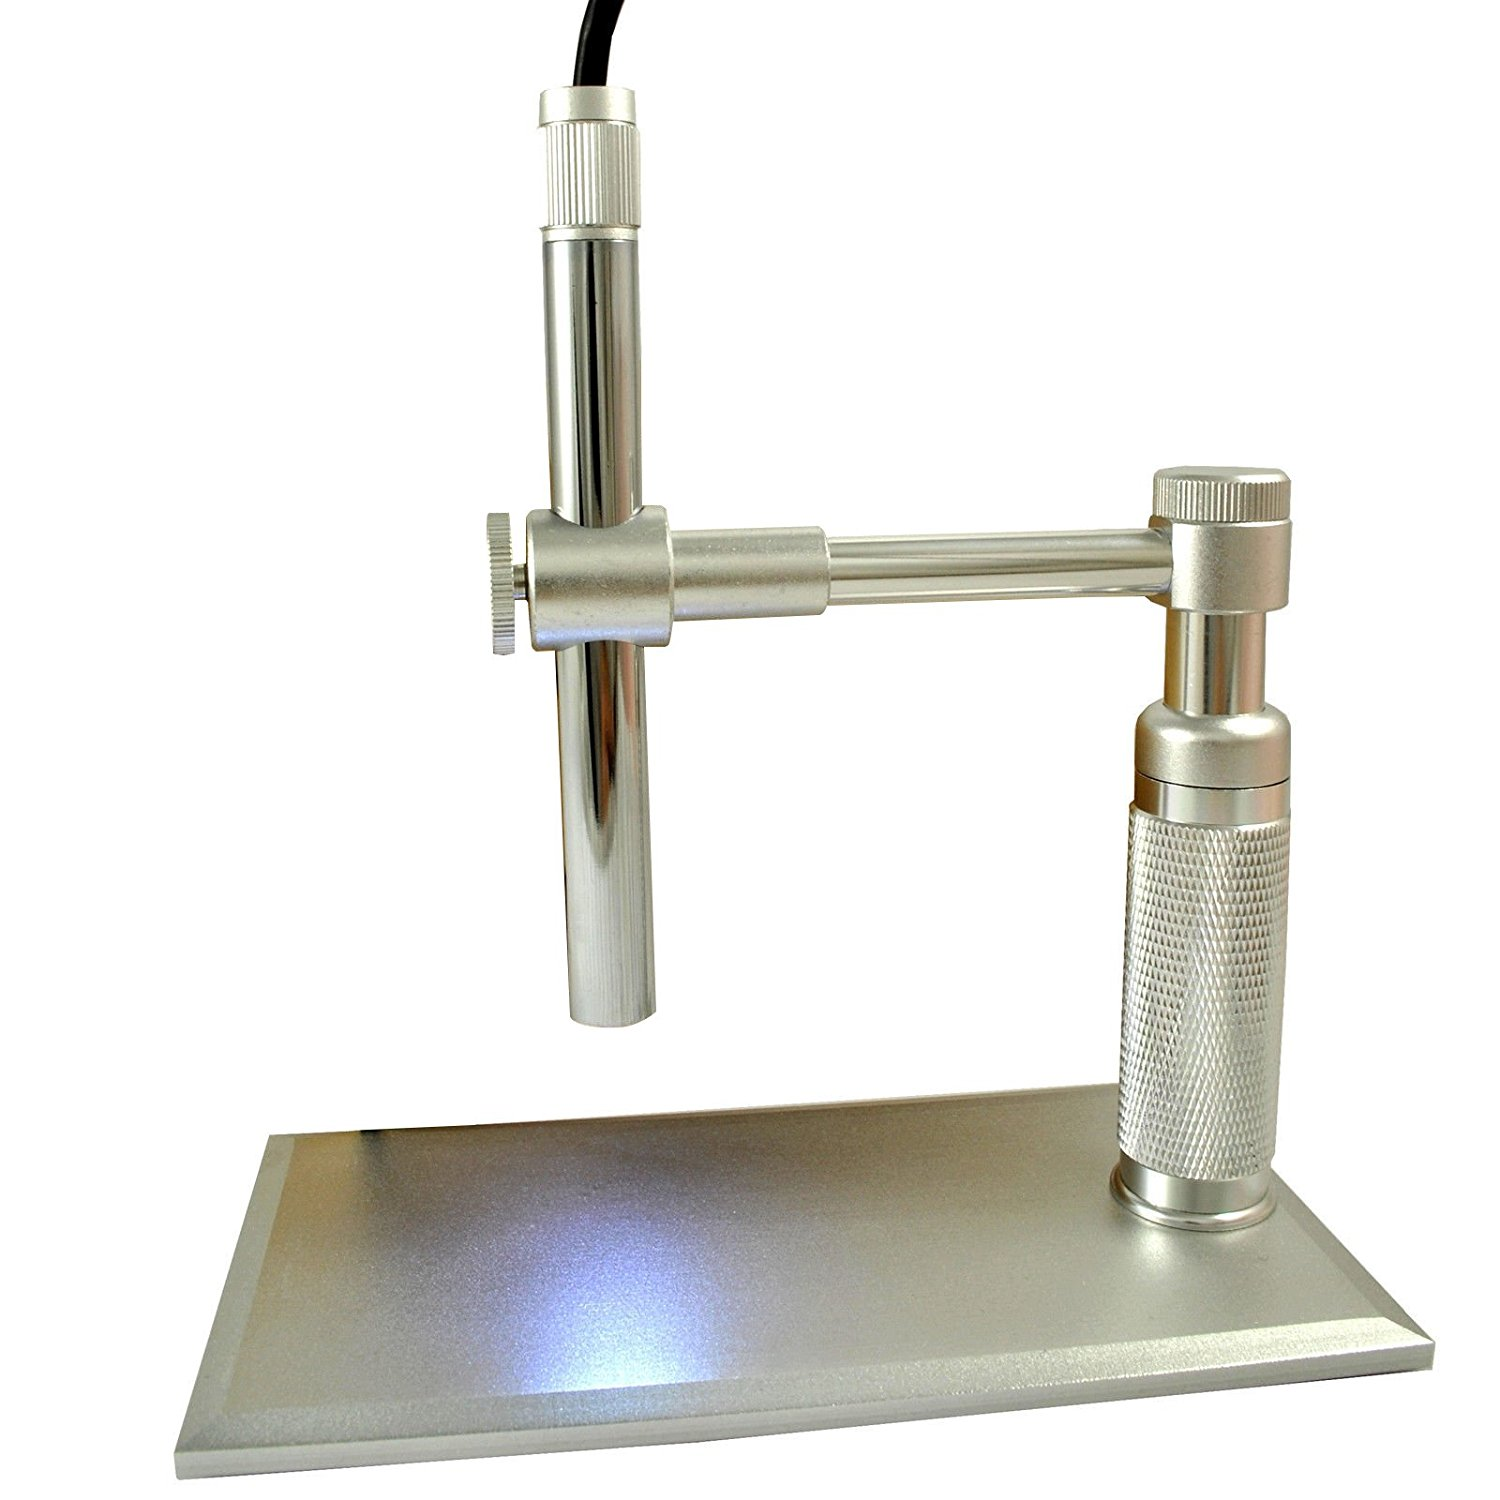 Opti-TekScope Digital USB Microscope